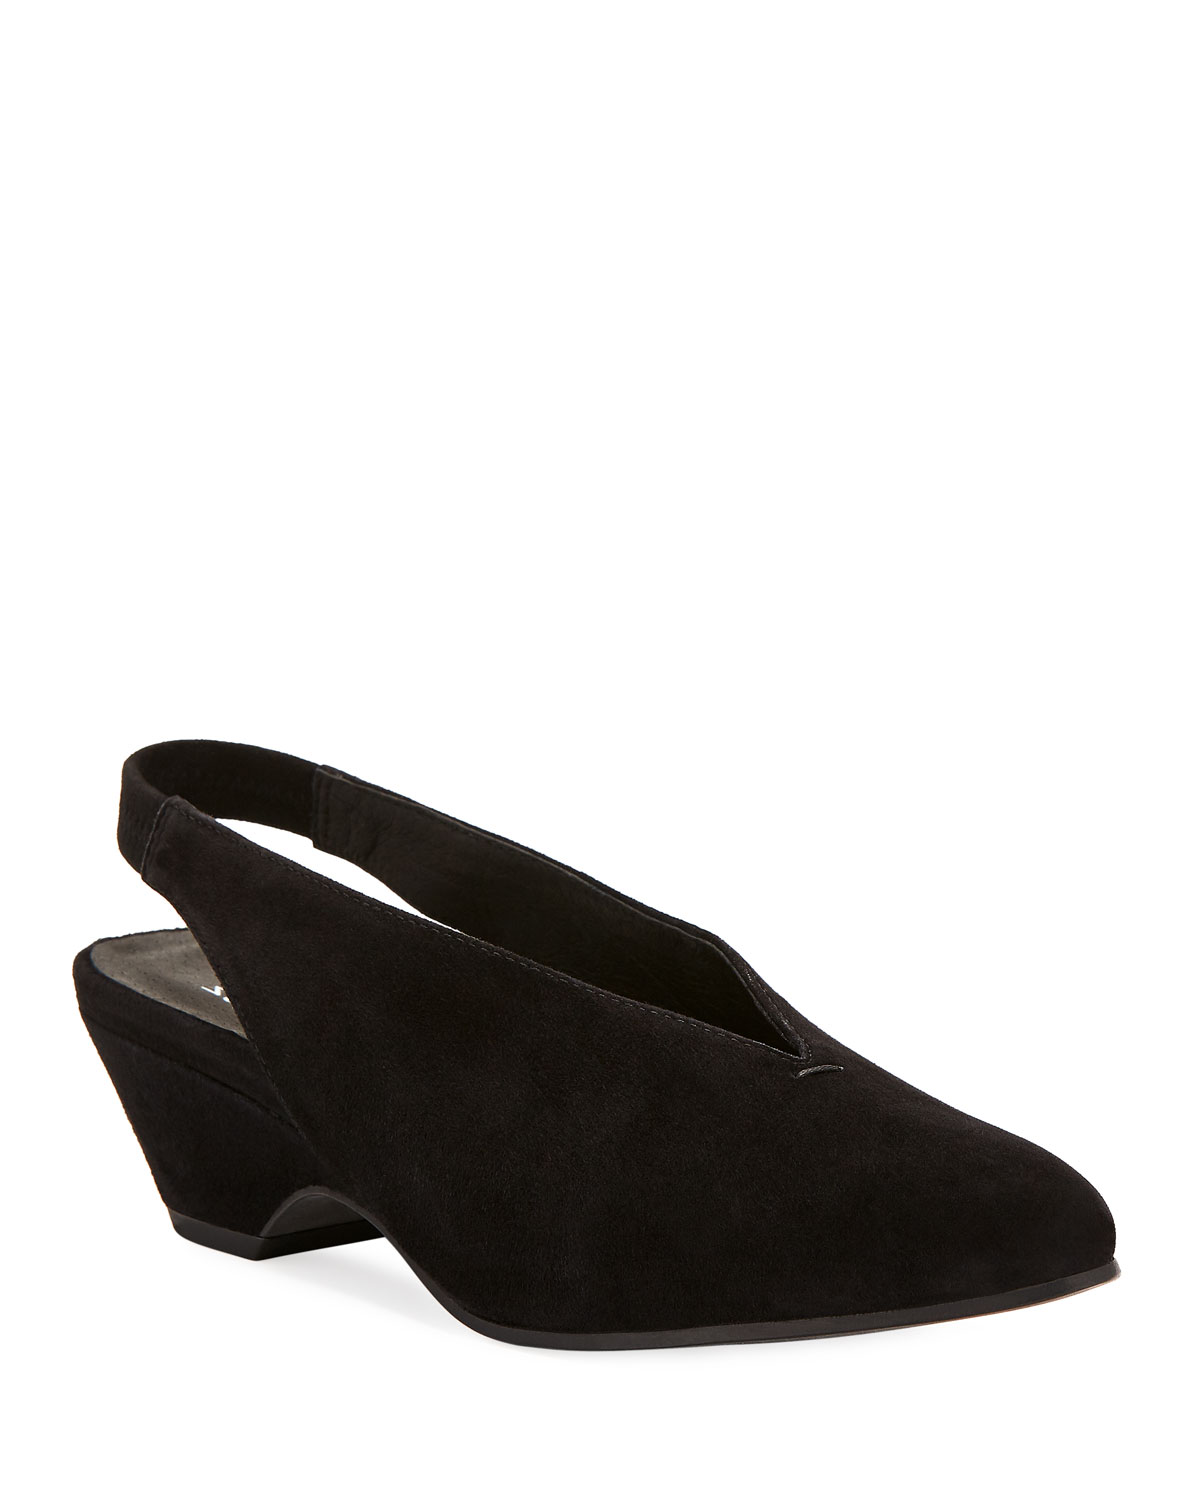 d3d070e346f Eileen Fisher Gatwick Suede Slingback Pumps